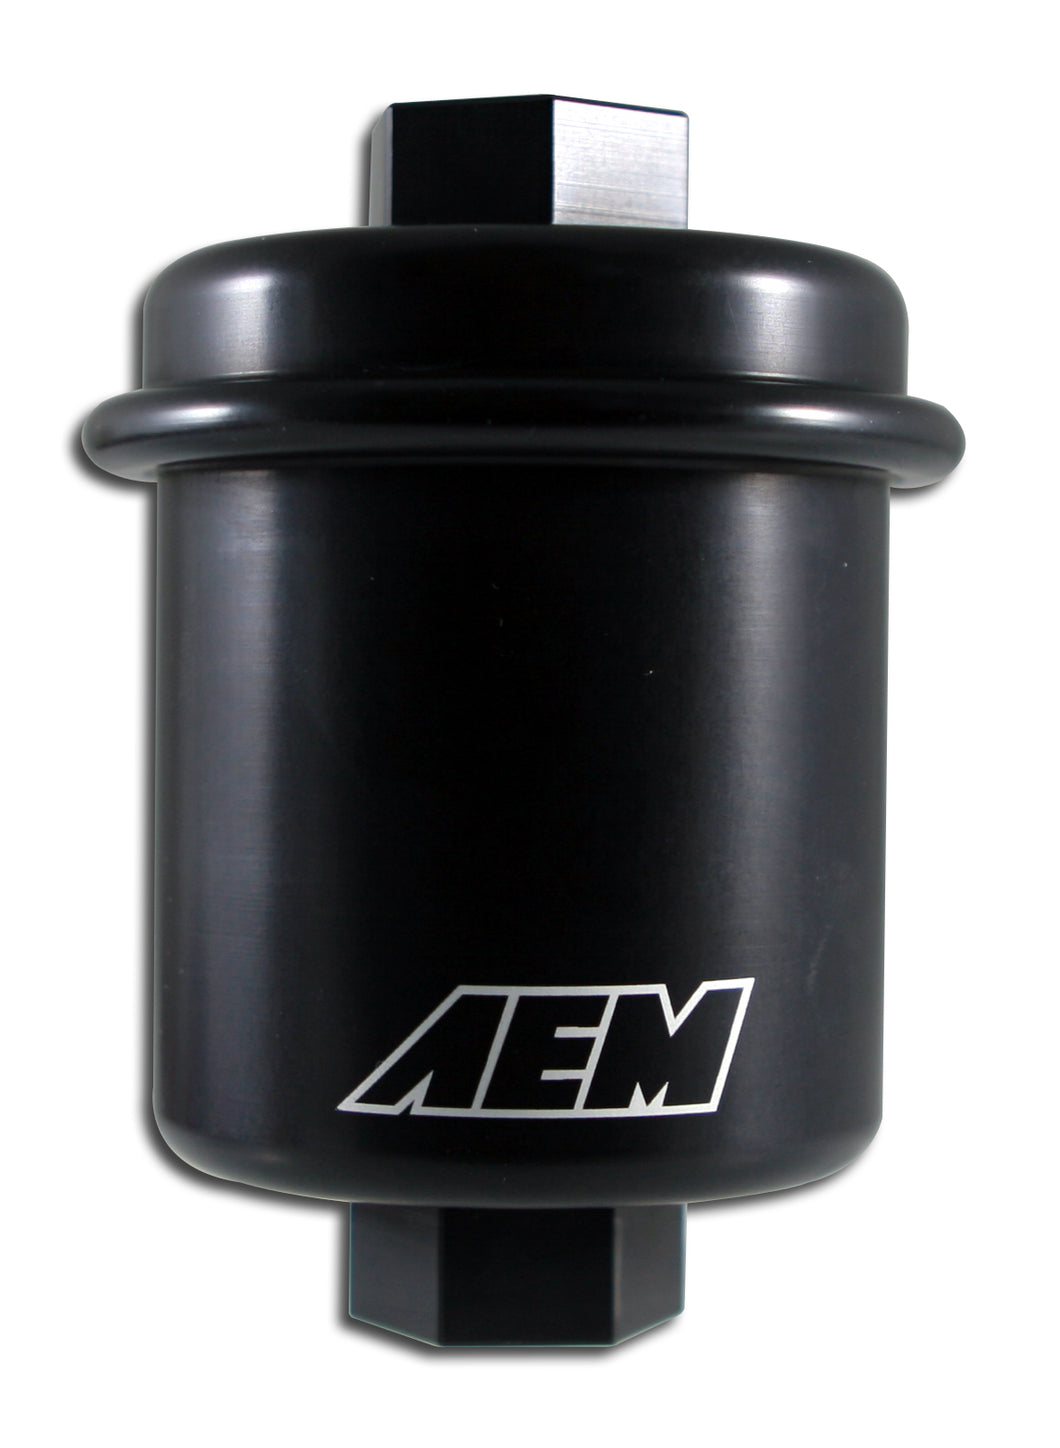 High Volume Fuel Filter. Black. Acura & Honda. Inlet: 14mm X 1.5 Outlet: 12mm X 1.25